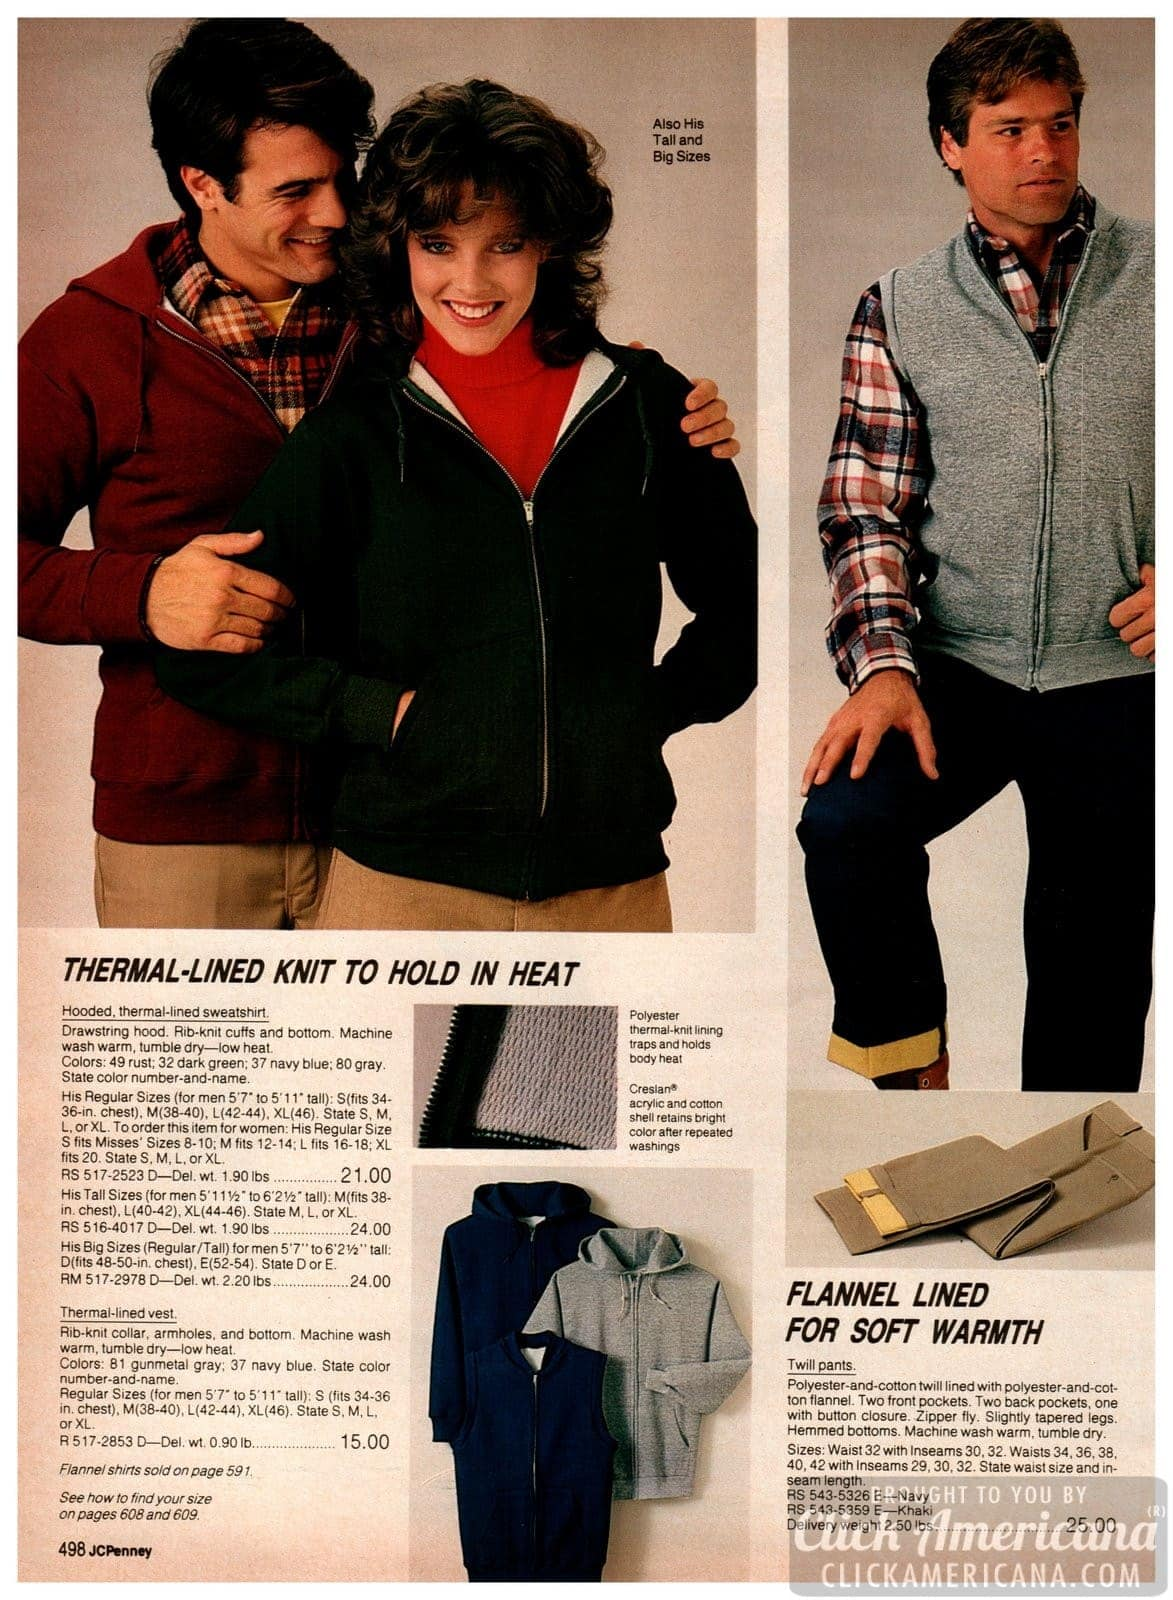 Thermal-lined knit jackets, hoodies and vests